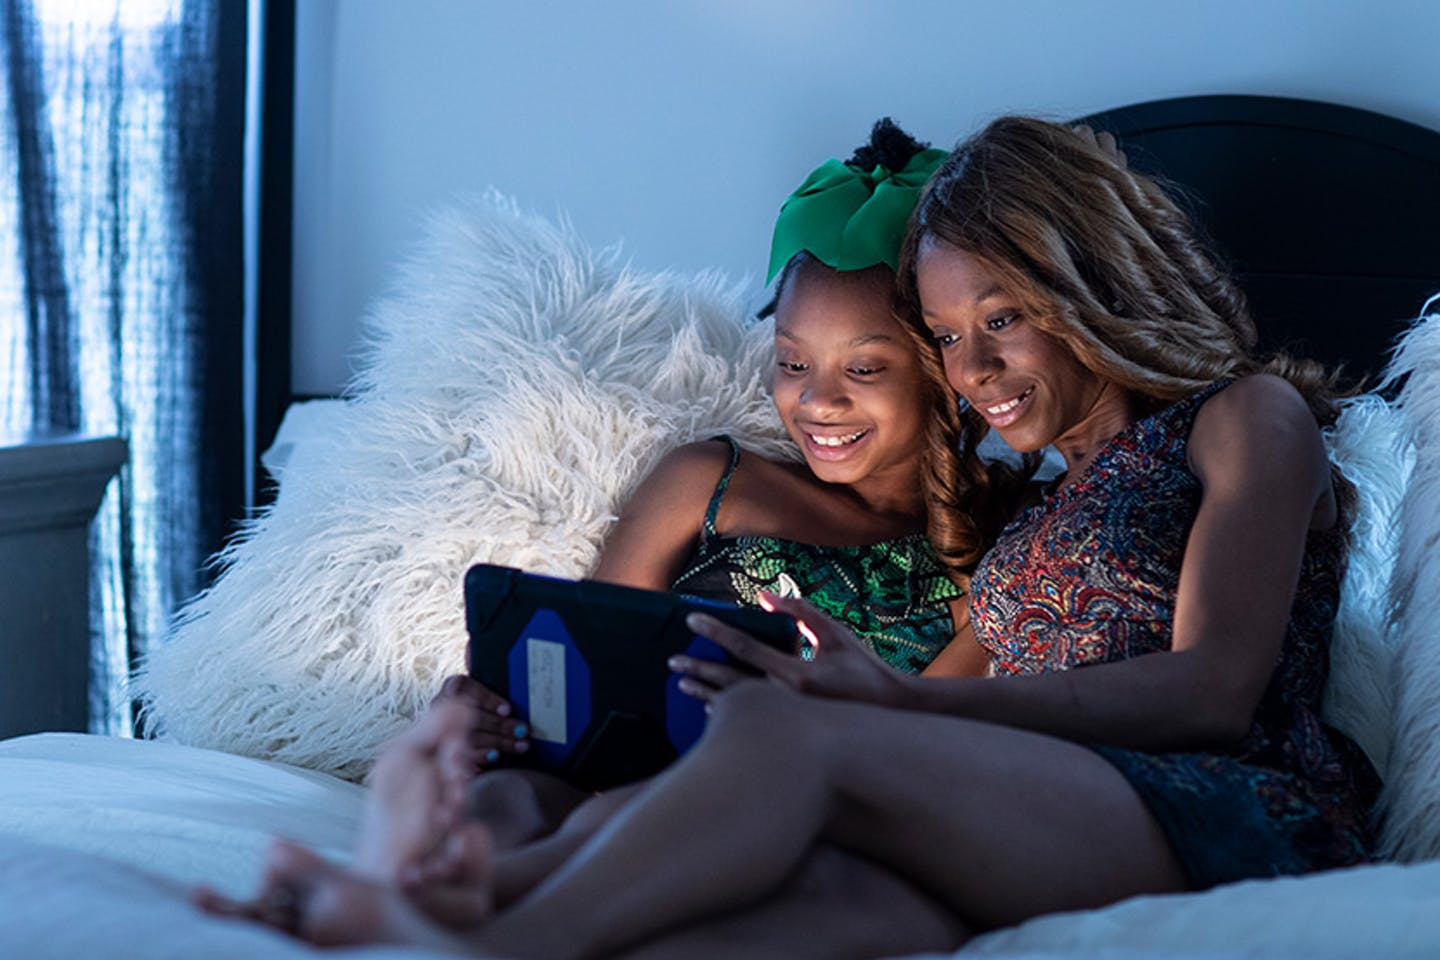 Mom and daughter streaming TV in bed.